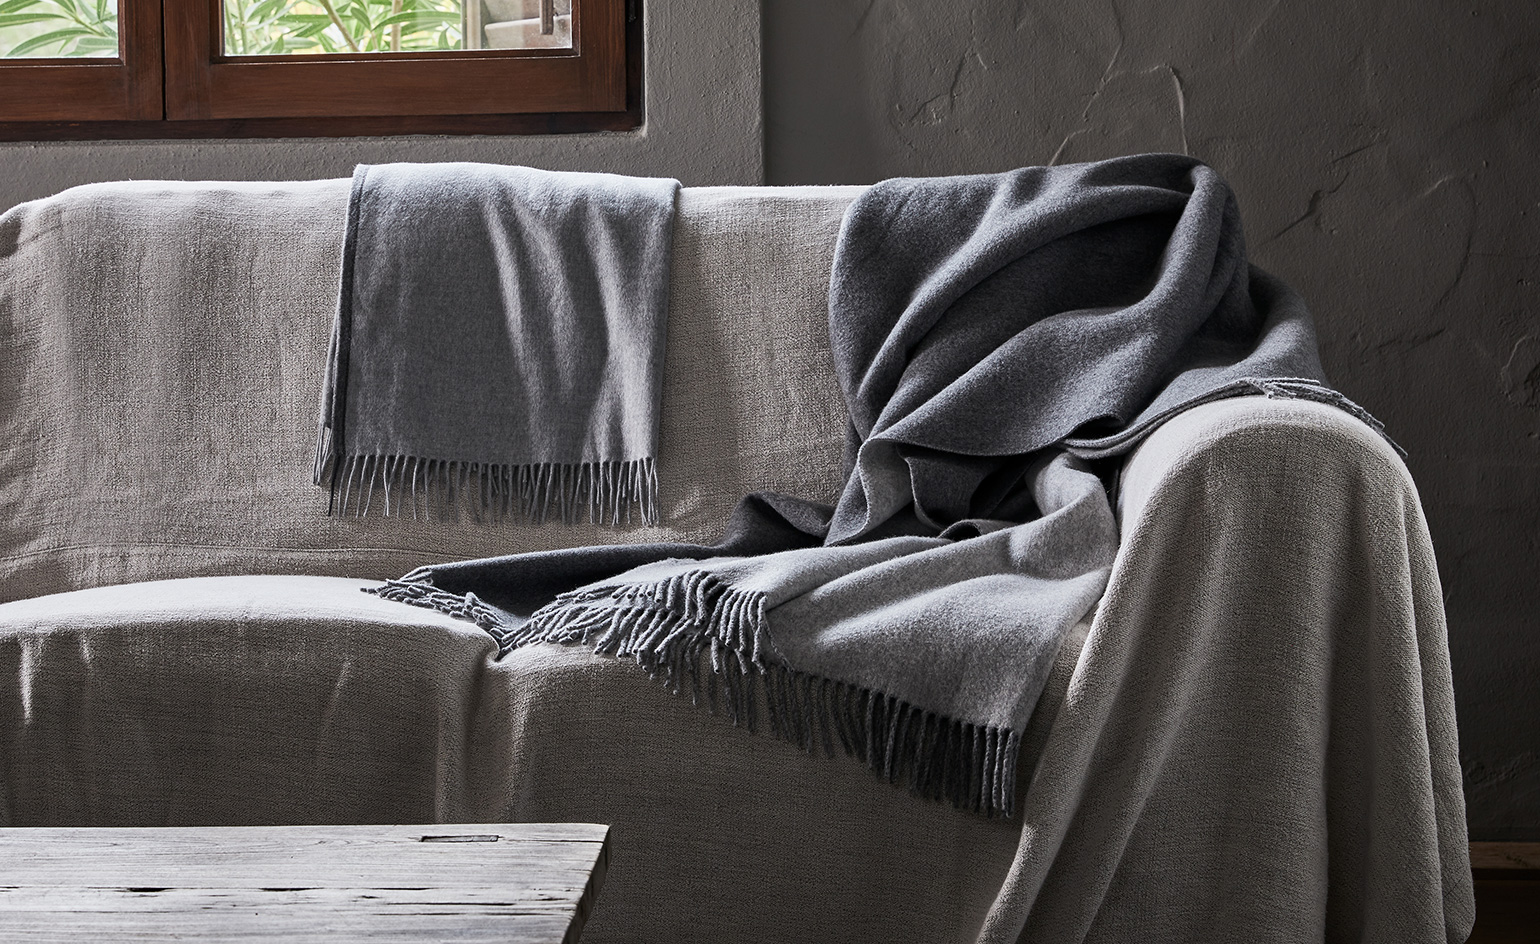 Blanket by Brunello Cucinelli